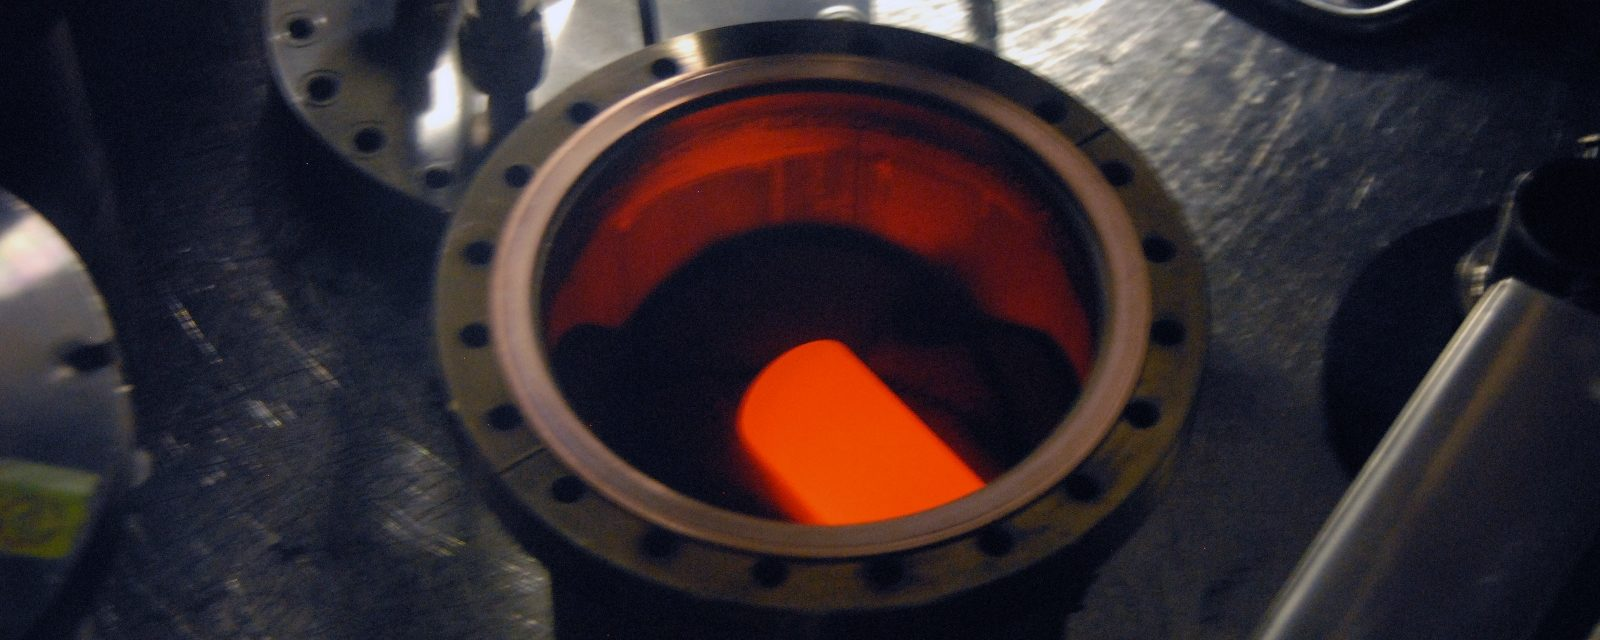 Plutonium-238 fuel rod in graphite impact shell